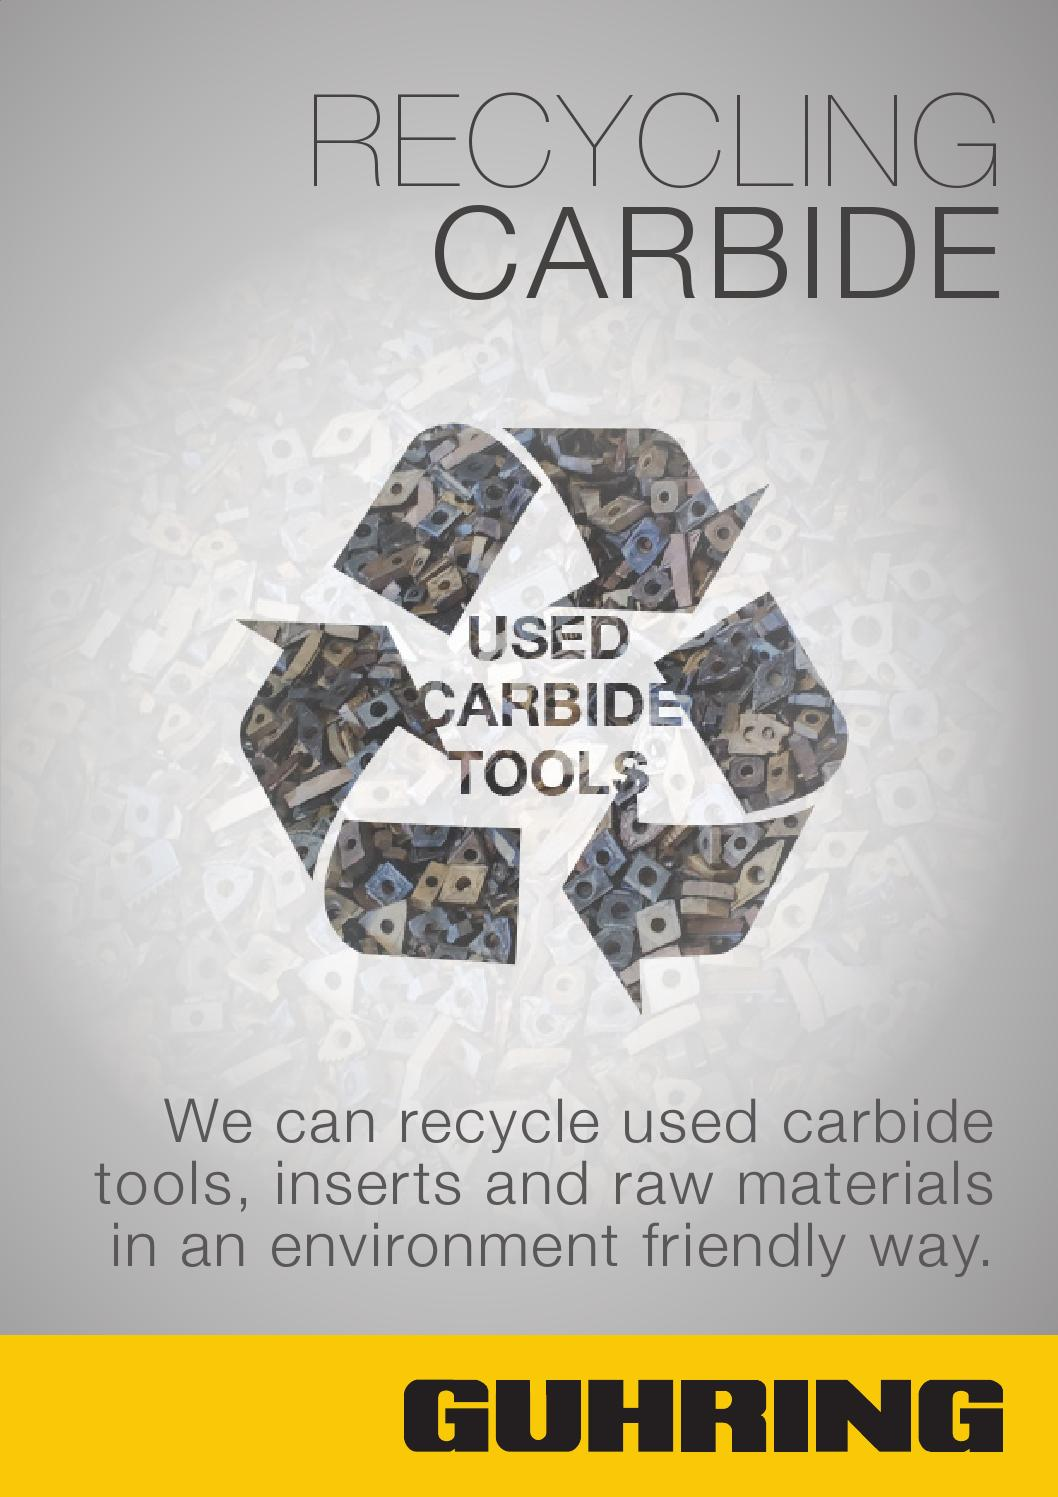 Guhring Recycling Carbide Application Form